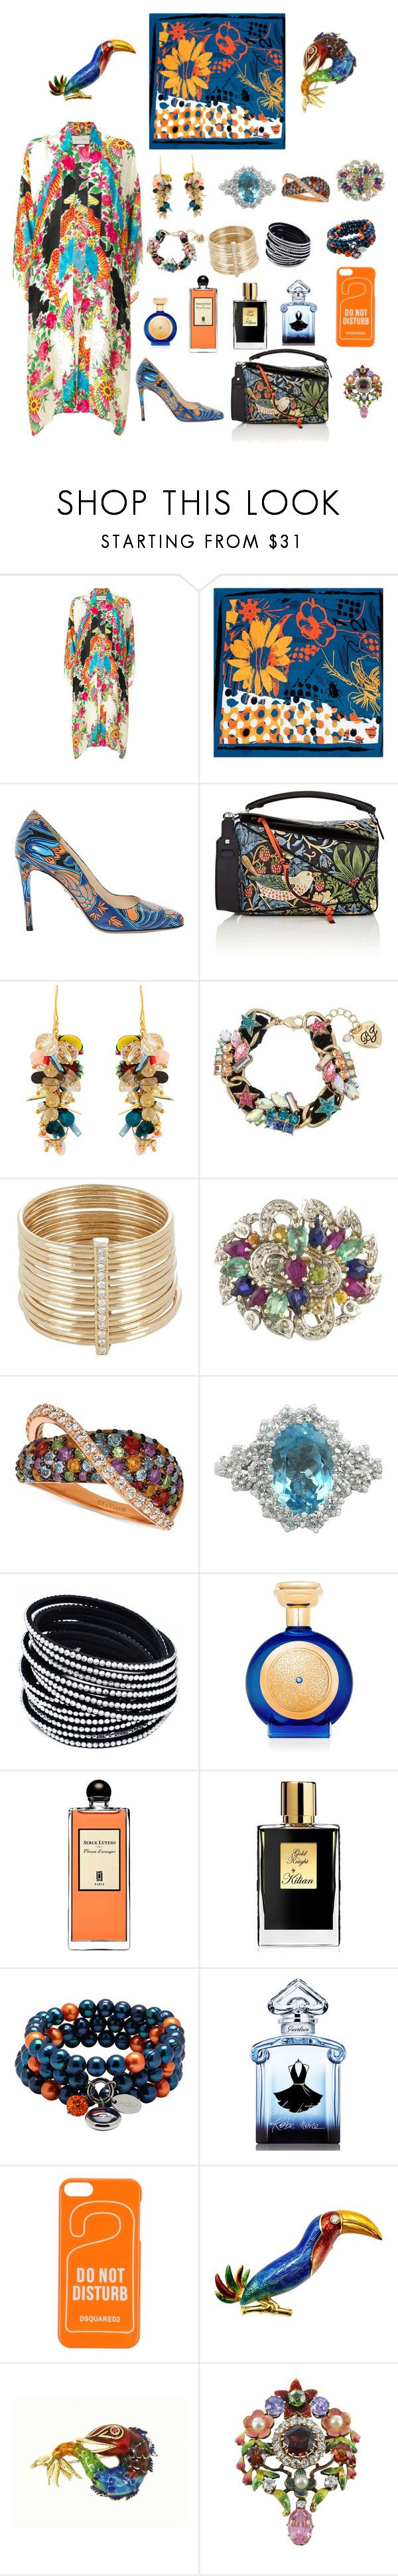 """""""Untitled #2177"""" by dkerbyg ❤ liked on Polyvore featuring Gucci, Bianca Elgar, Prada, Loewe, Megan Park, Betsey Johnson, Feathered Soul, LE VIAN, Boadicea the Victorious and Serge Lutens"""